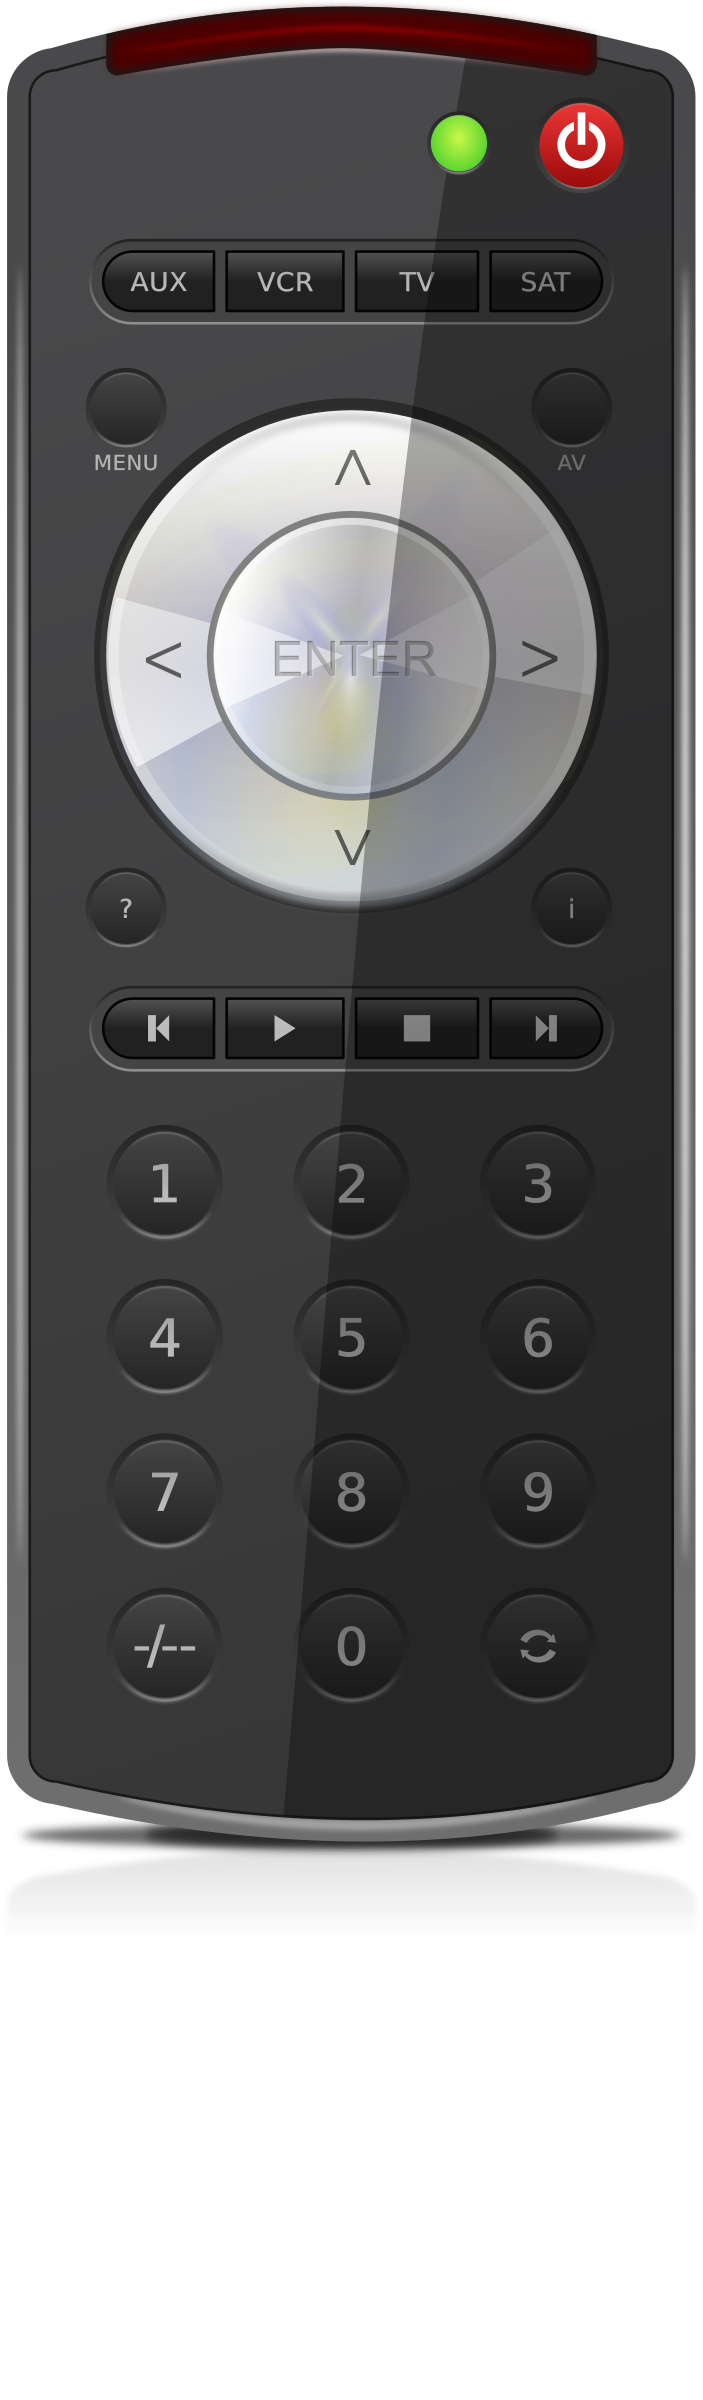 Television clipart tv remote. Control icons png free